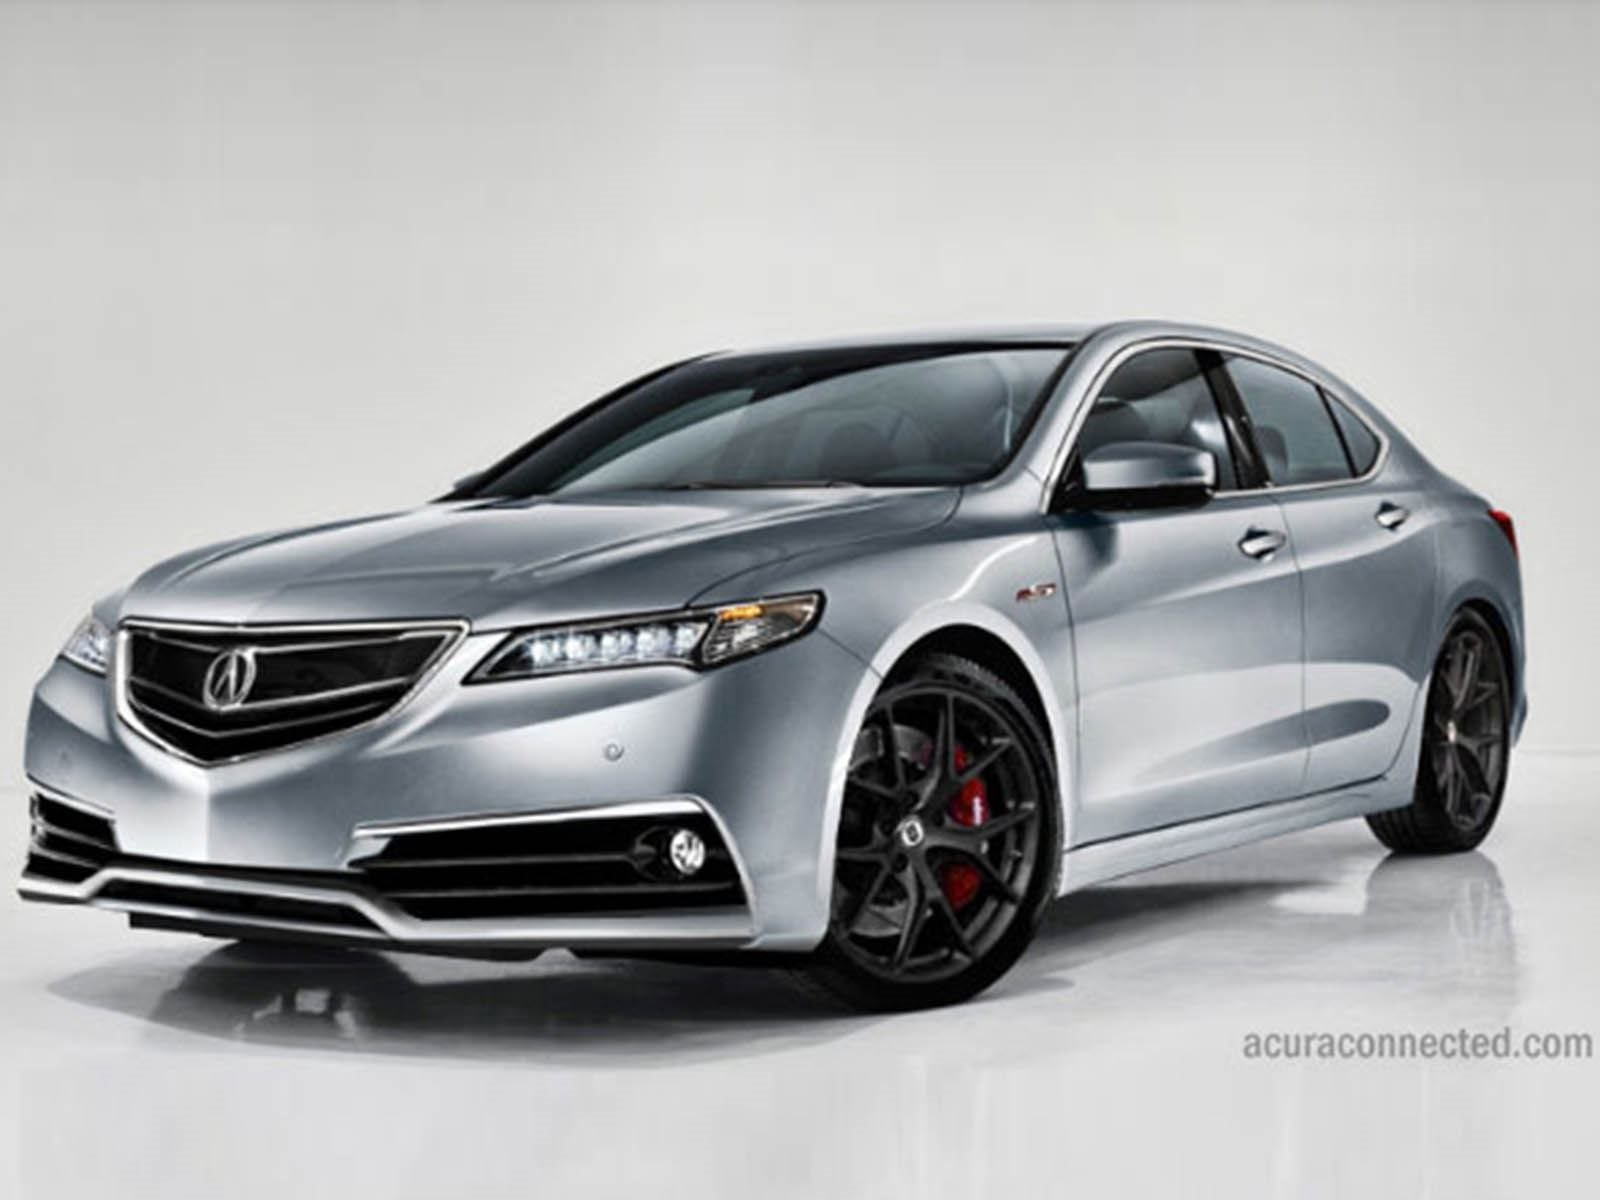 5 Improvements That Could Make The Acura Tlx A Perfect Sport